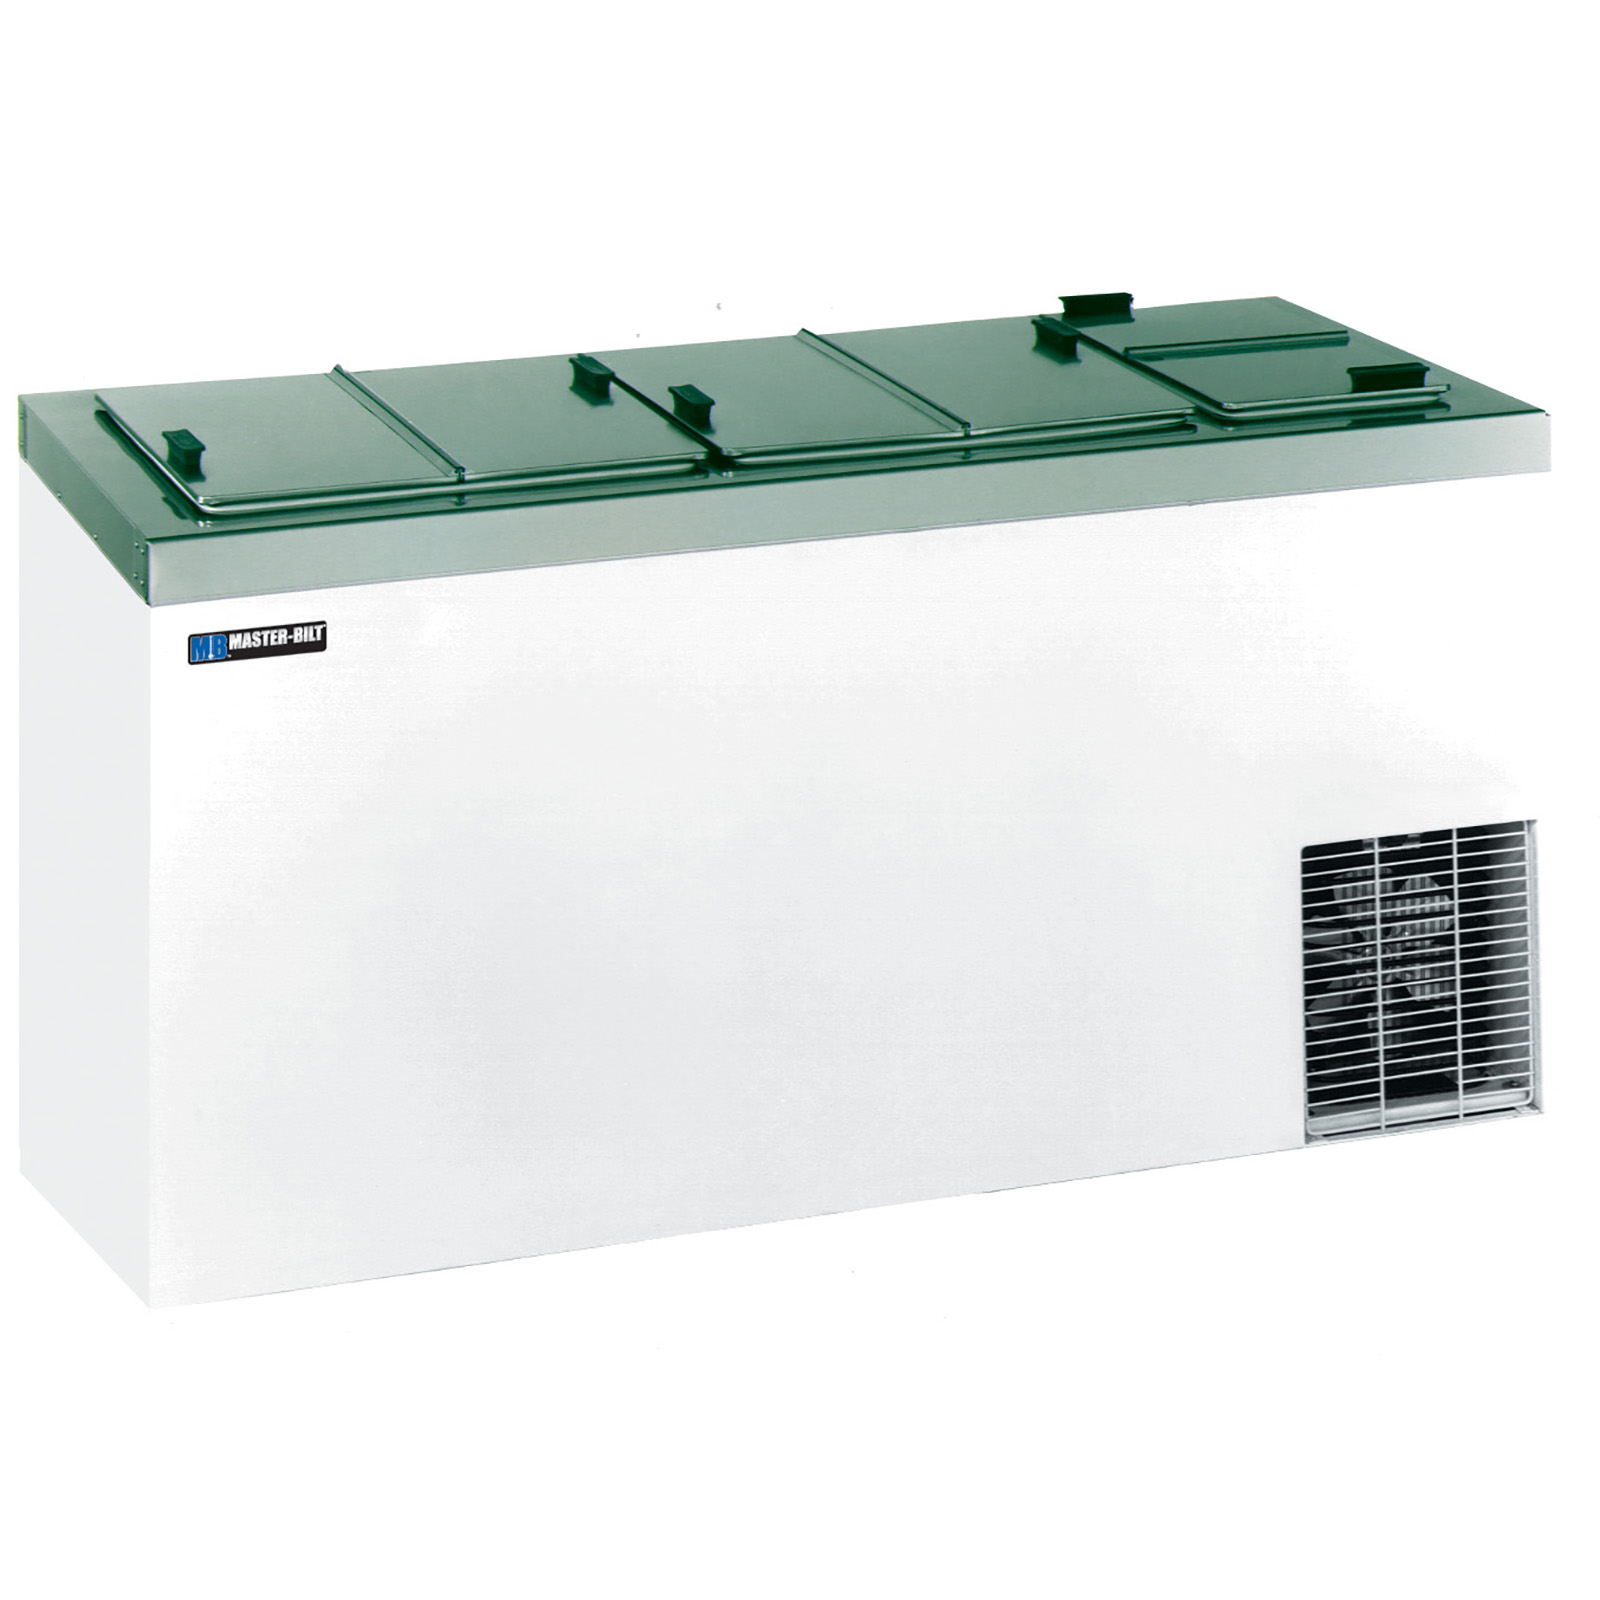 Master-Bilt Products DC-10D ice cream dipping cabinet